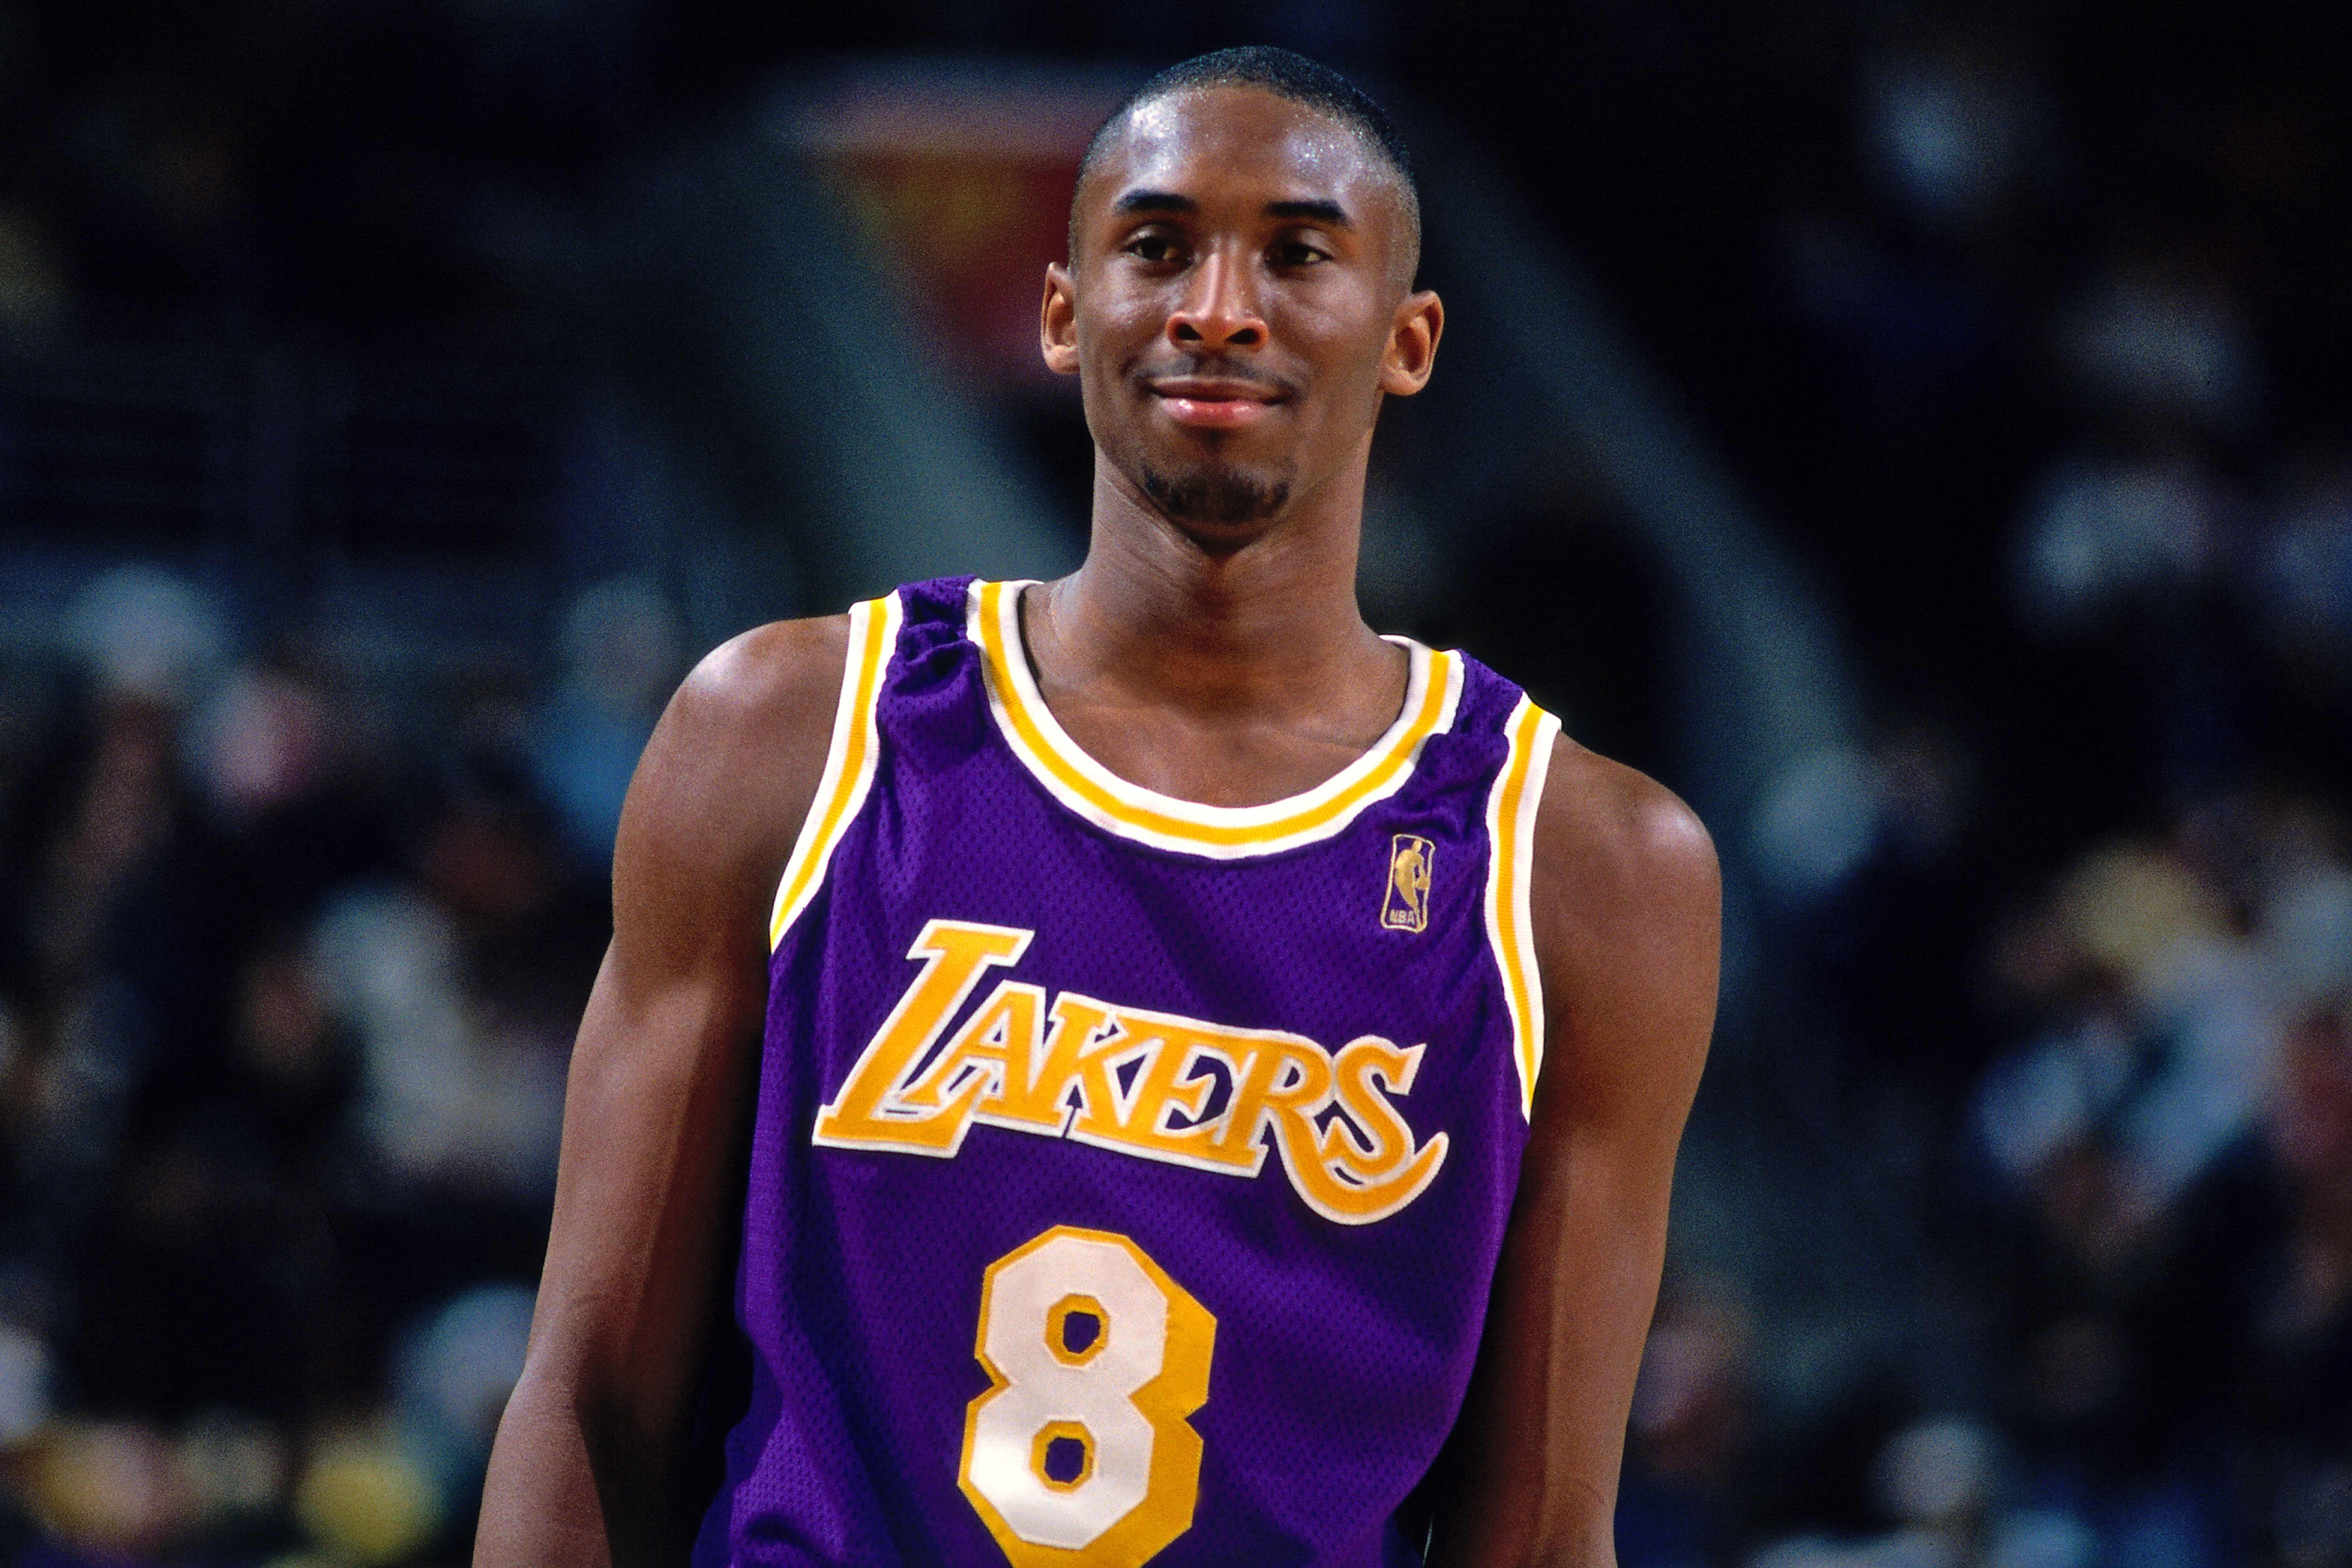 Ex-basketball star Kobe Bryant, 4 others die in helicopter crash